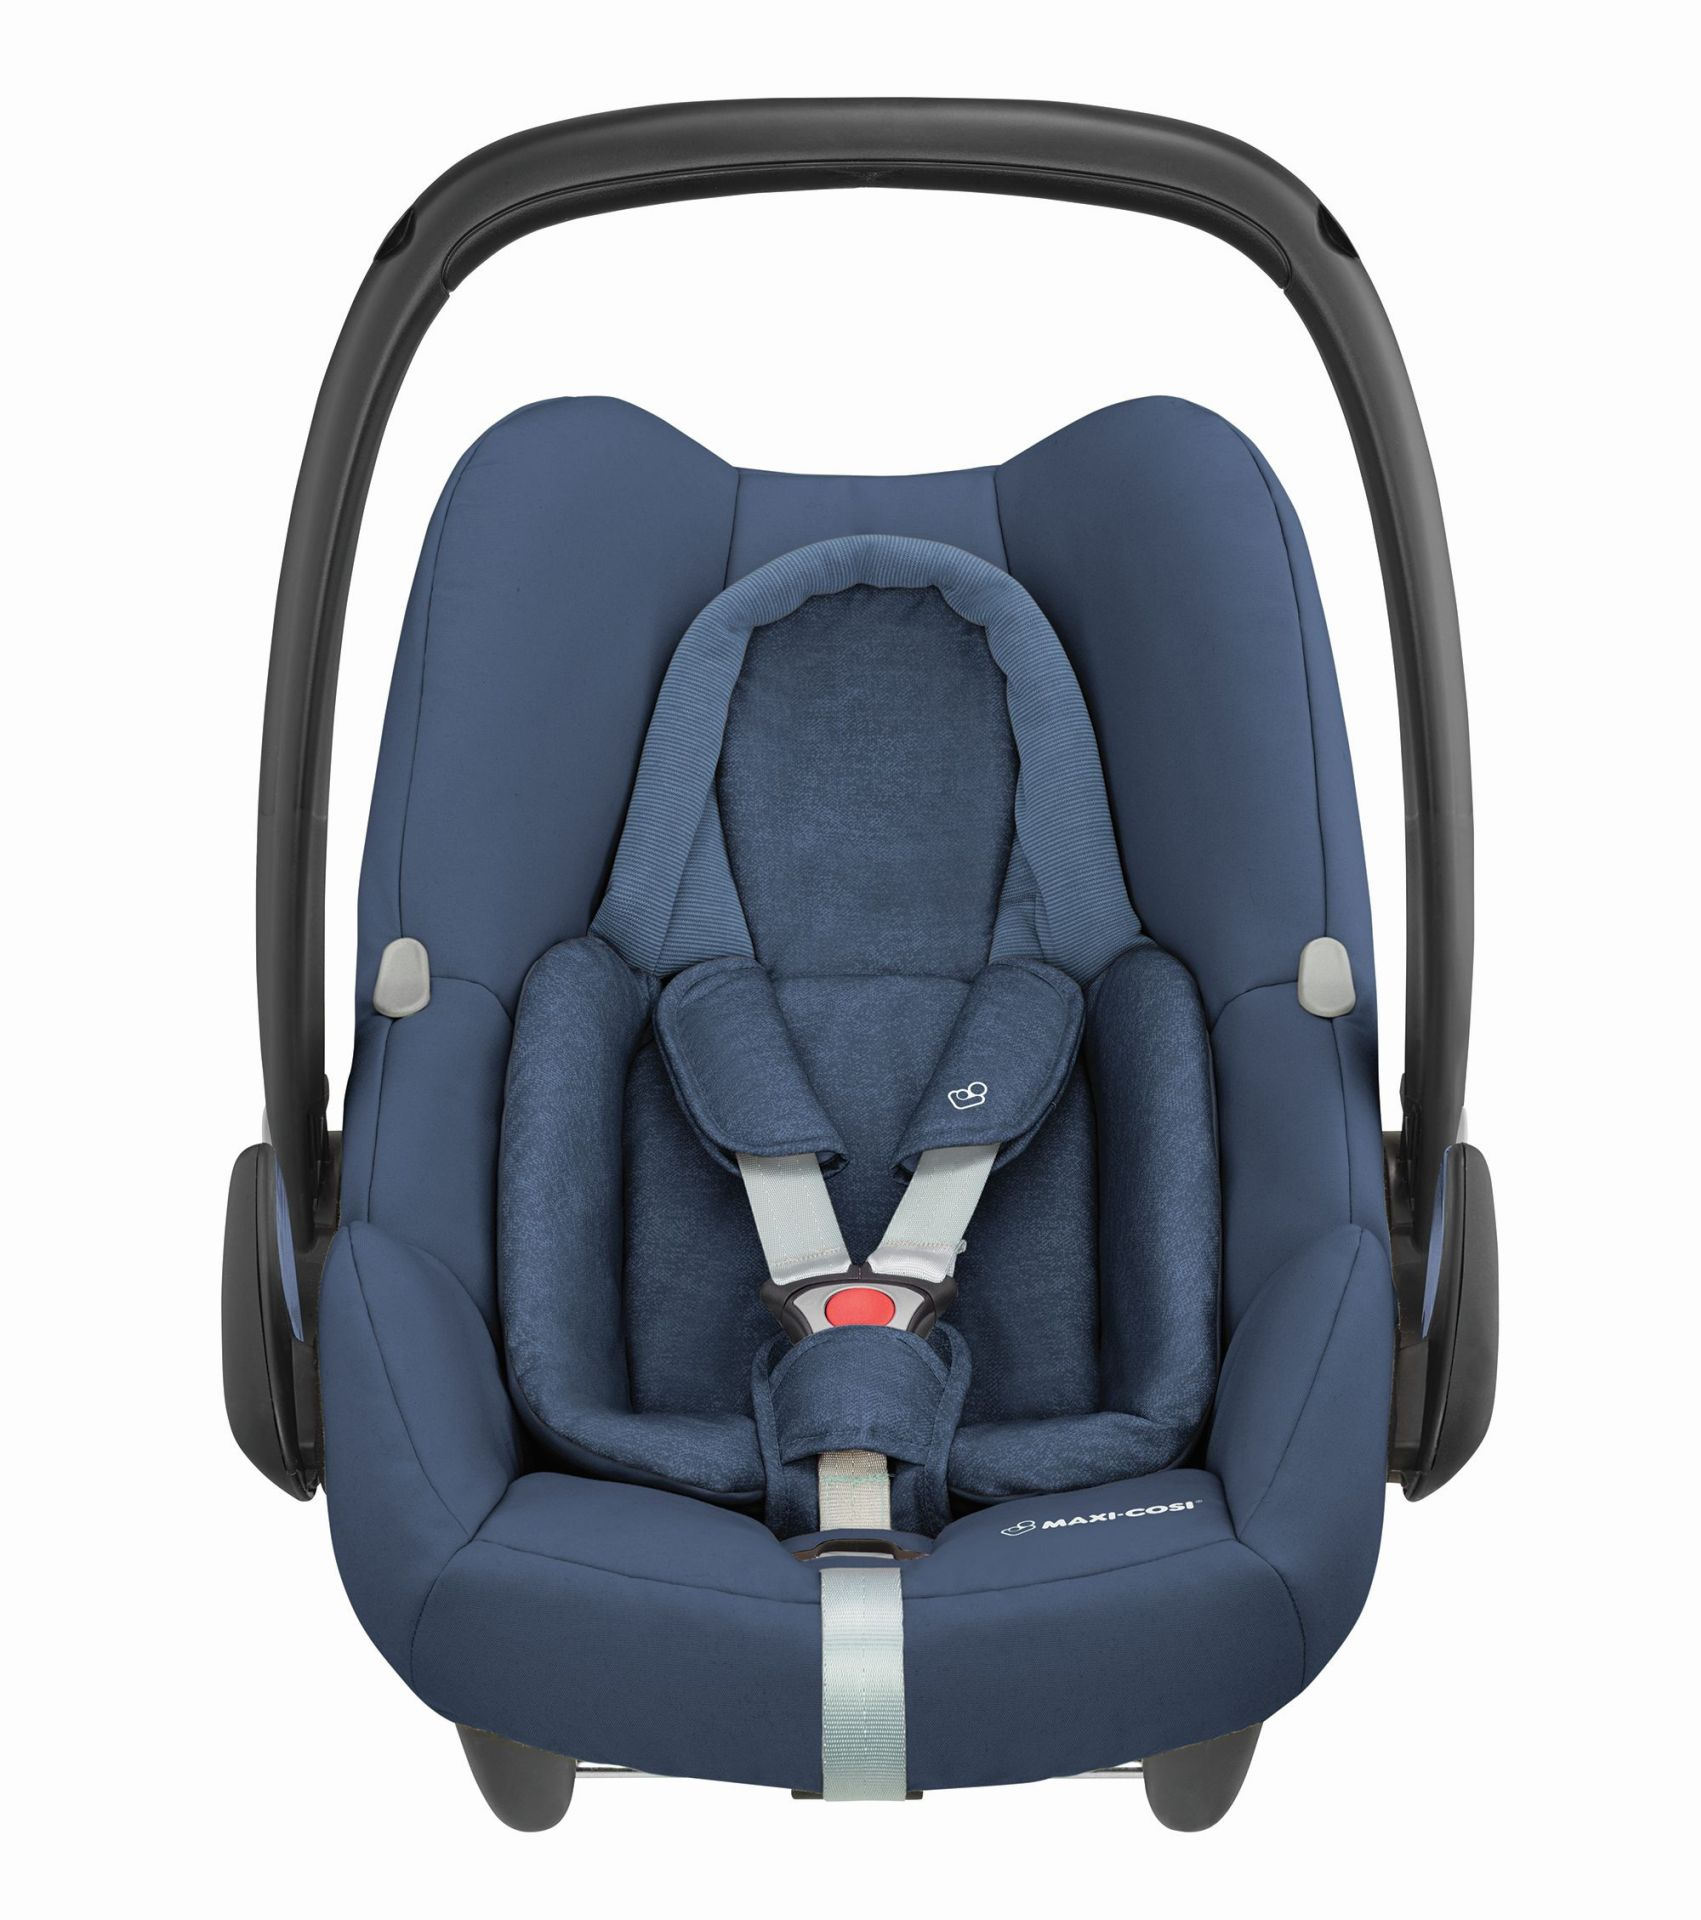 maxi cosi babyschale rock inkl familyfix one i size 2018 nomad blue buy at kidsroom car seats. Black Bedroom Furniture Sets. Home Design Ideas